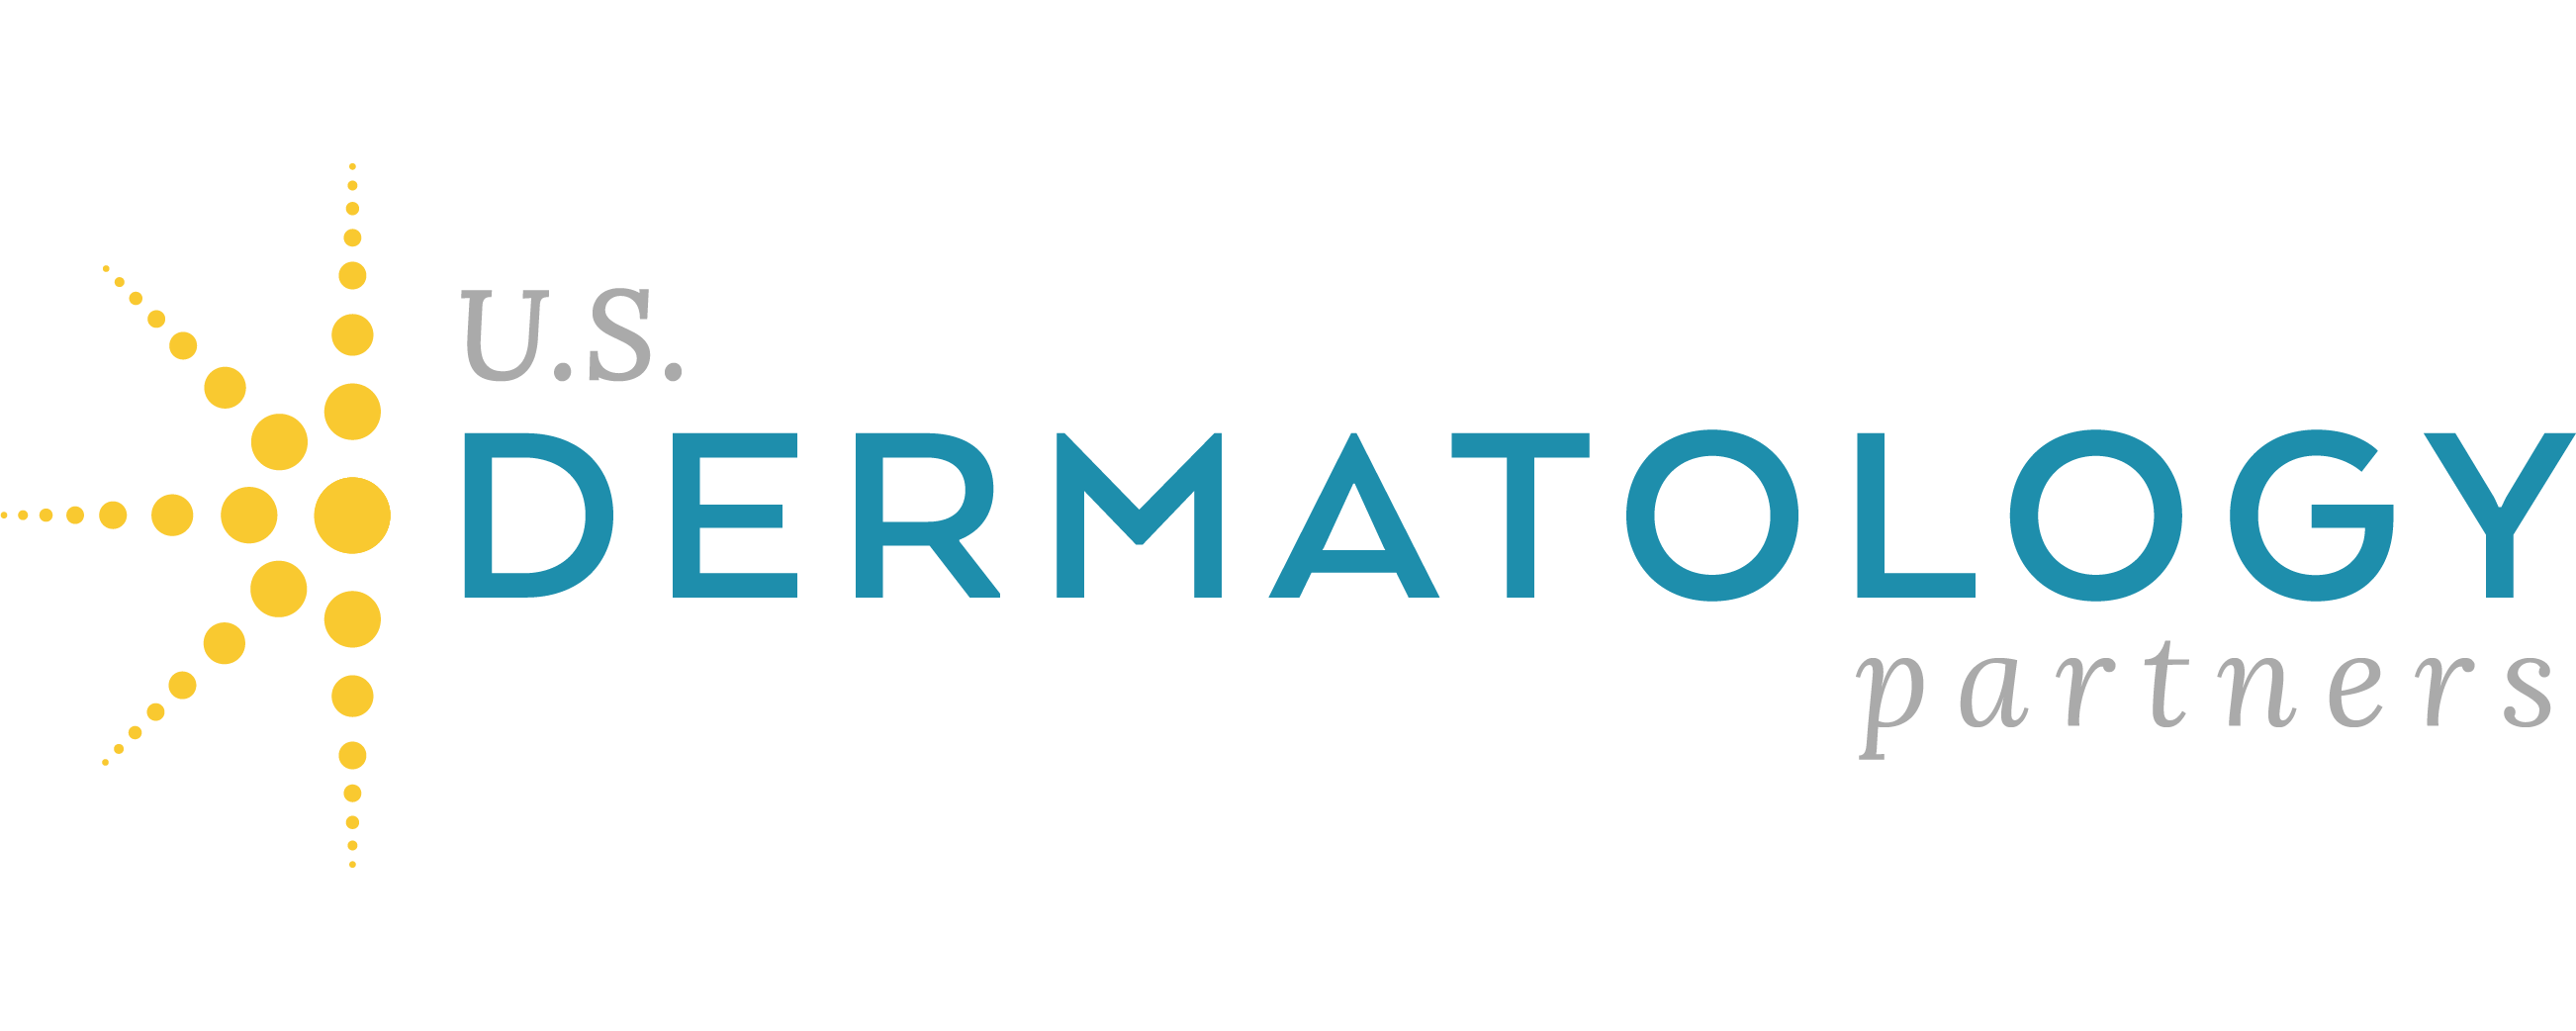 U.S. Dermatology Partners - Weatherford On Santa Fe Logo